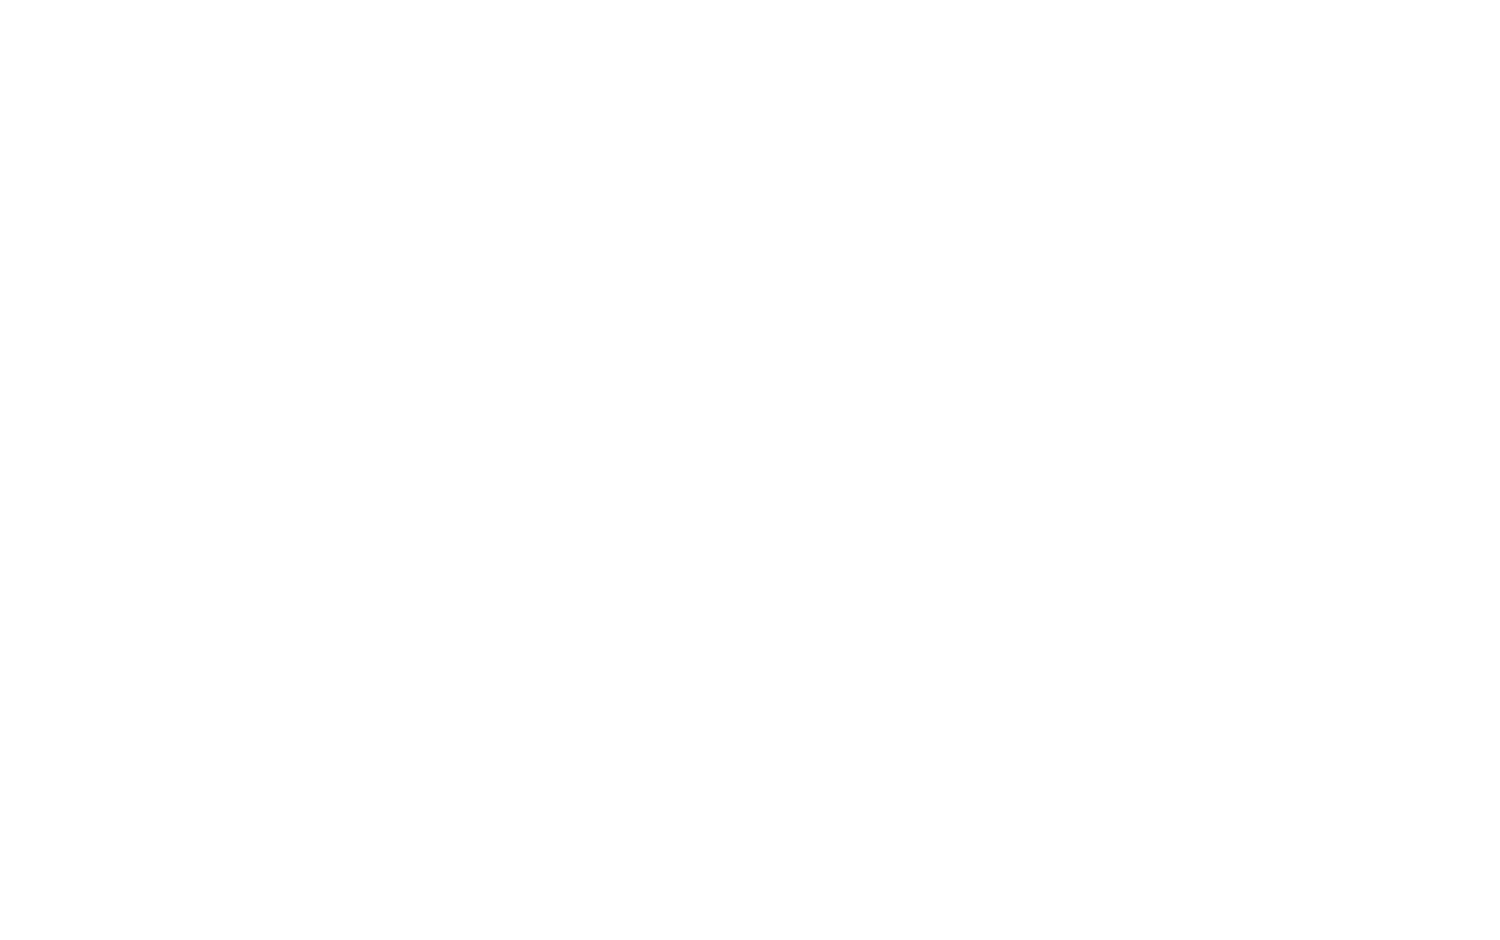 Ginis.Salon l The Official Site of Gini's Salon International